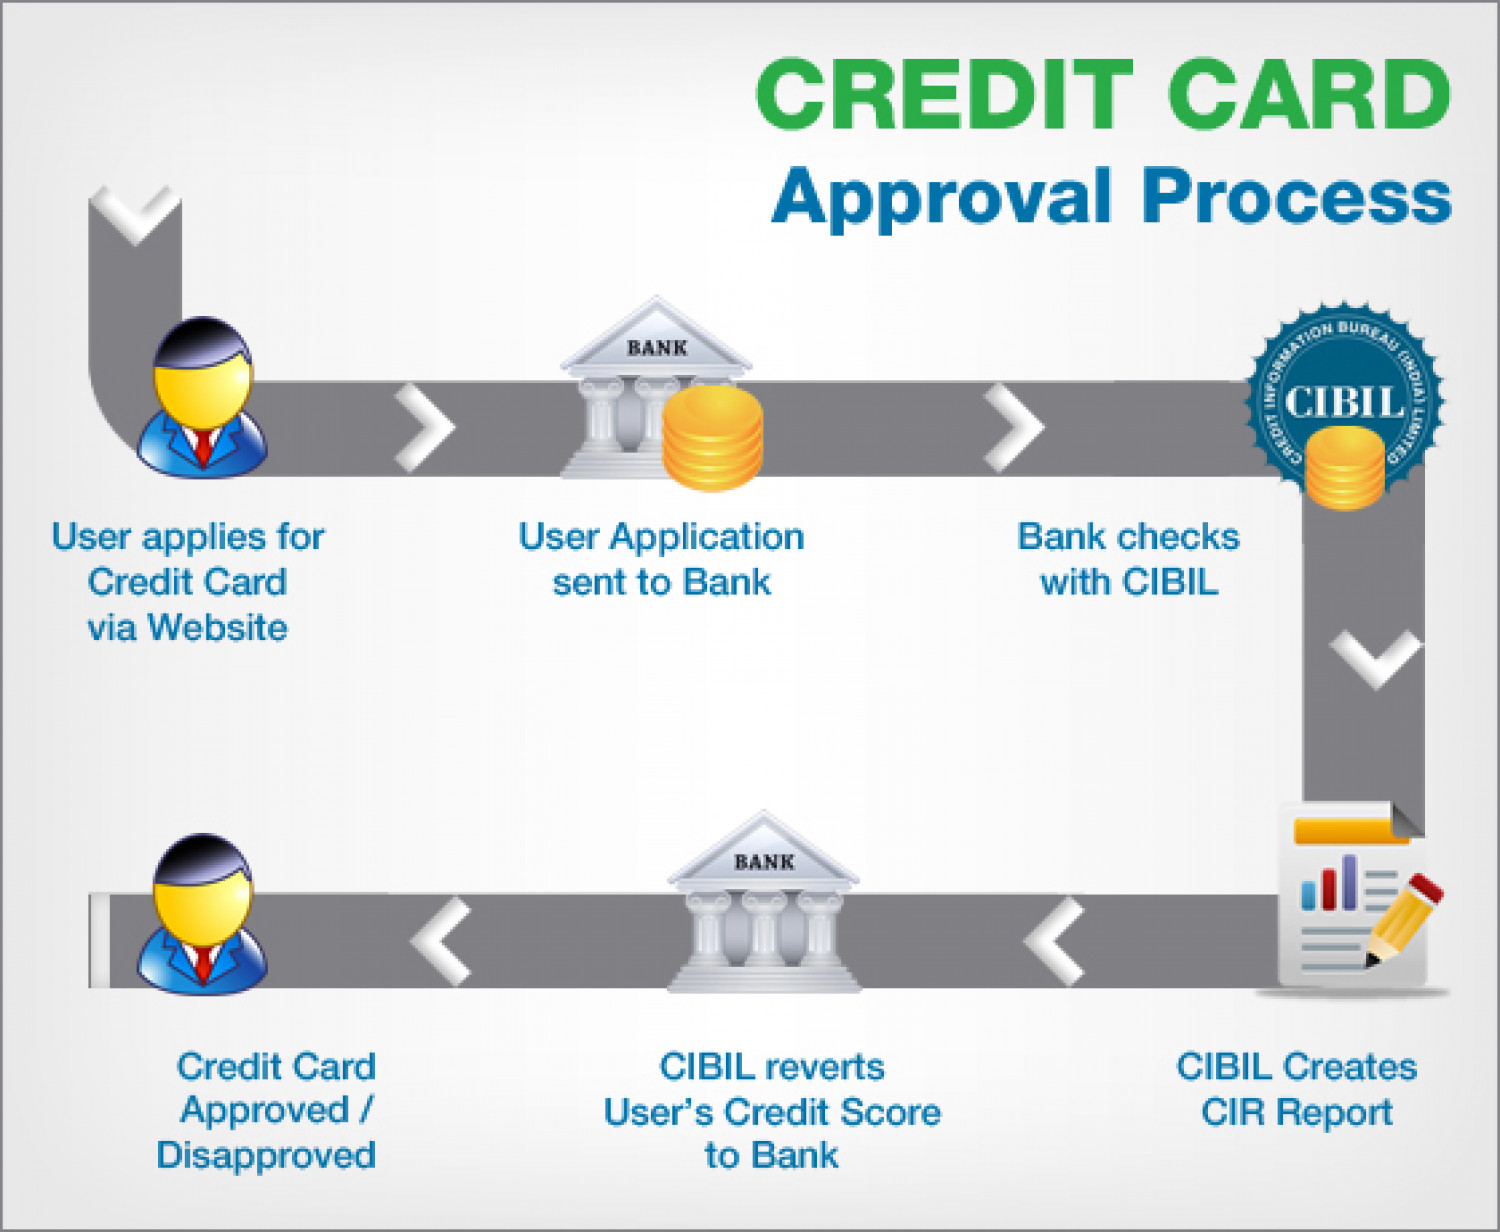 Credit Card Approval Process Infographic